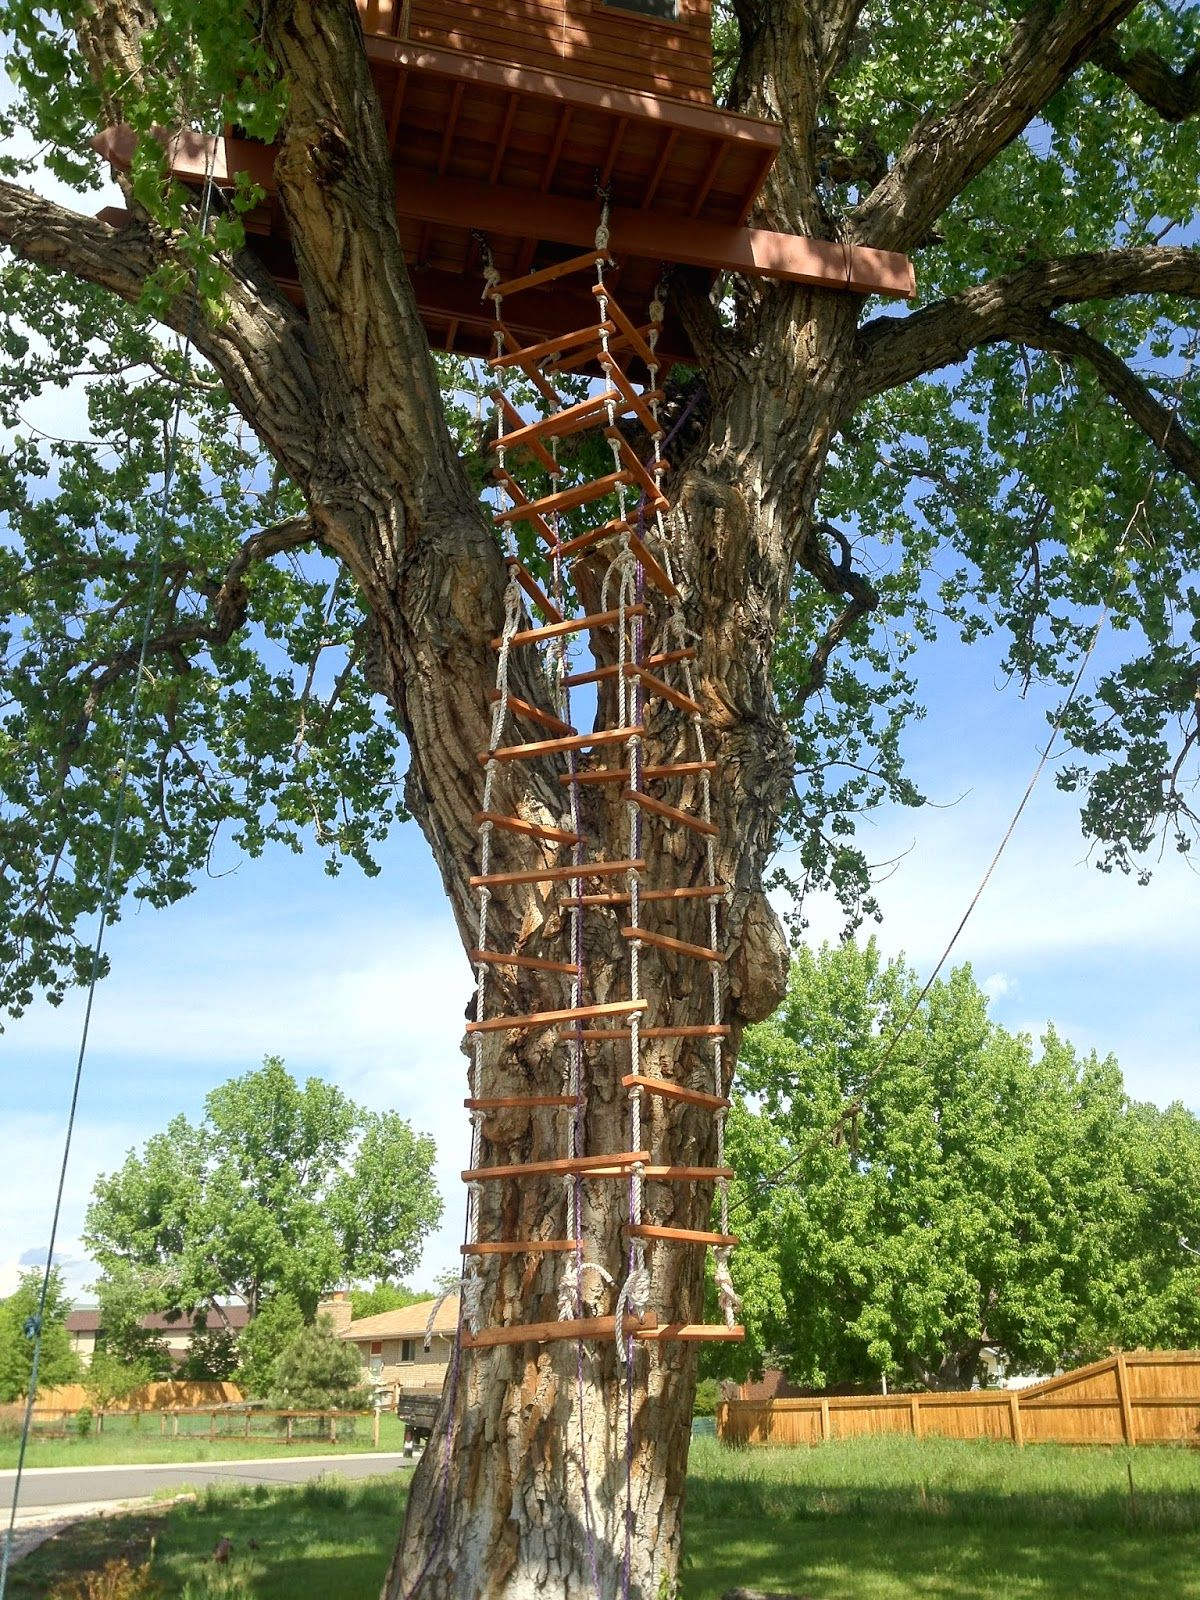 Treehouse Rope Ladder 4 sided Album on